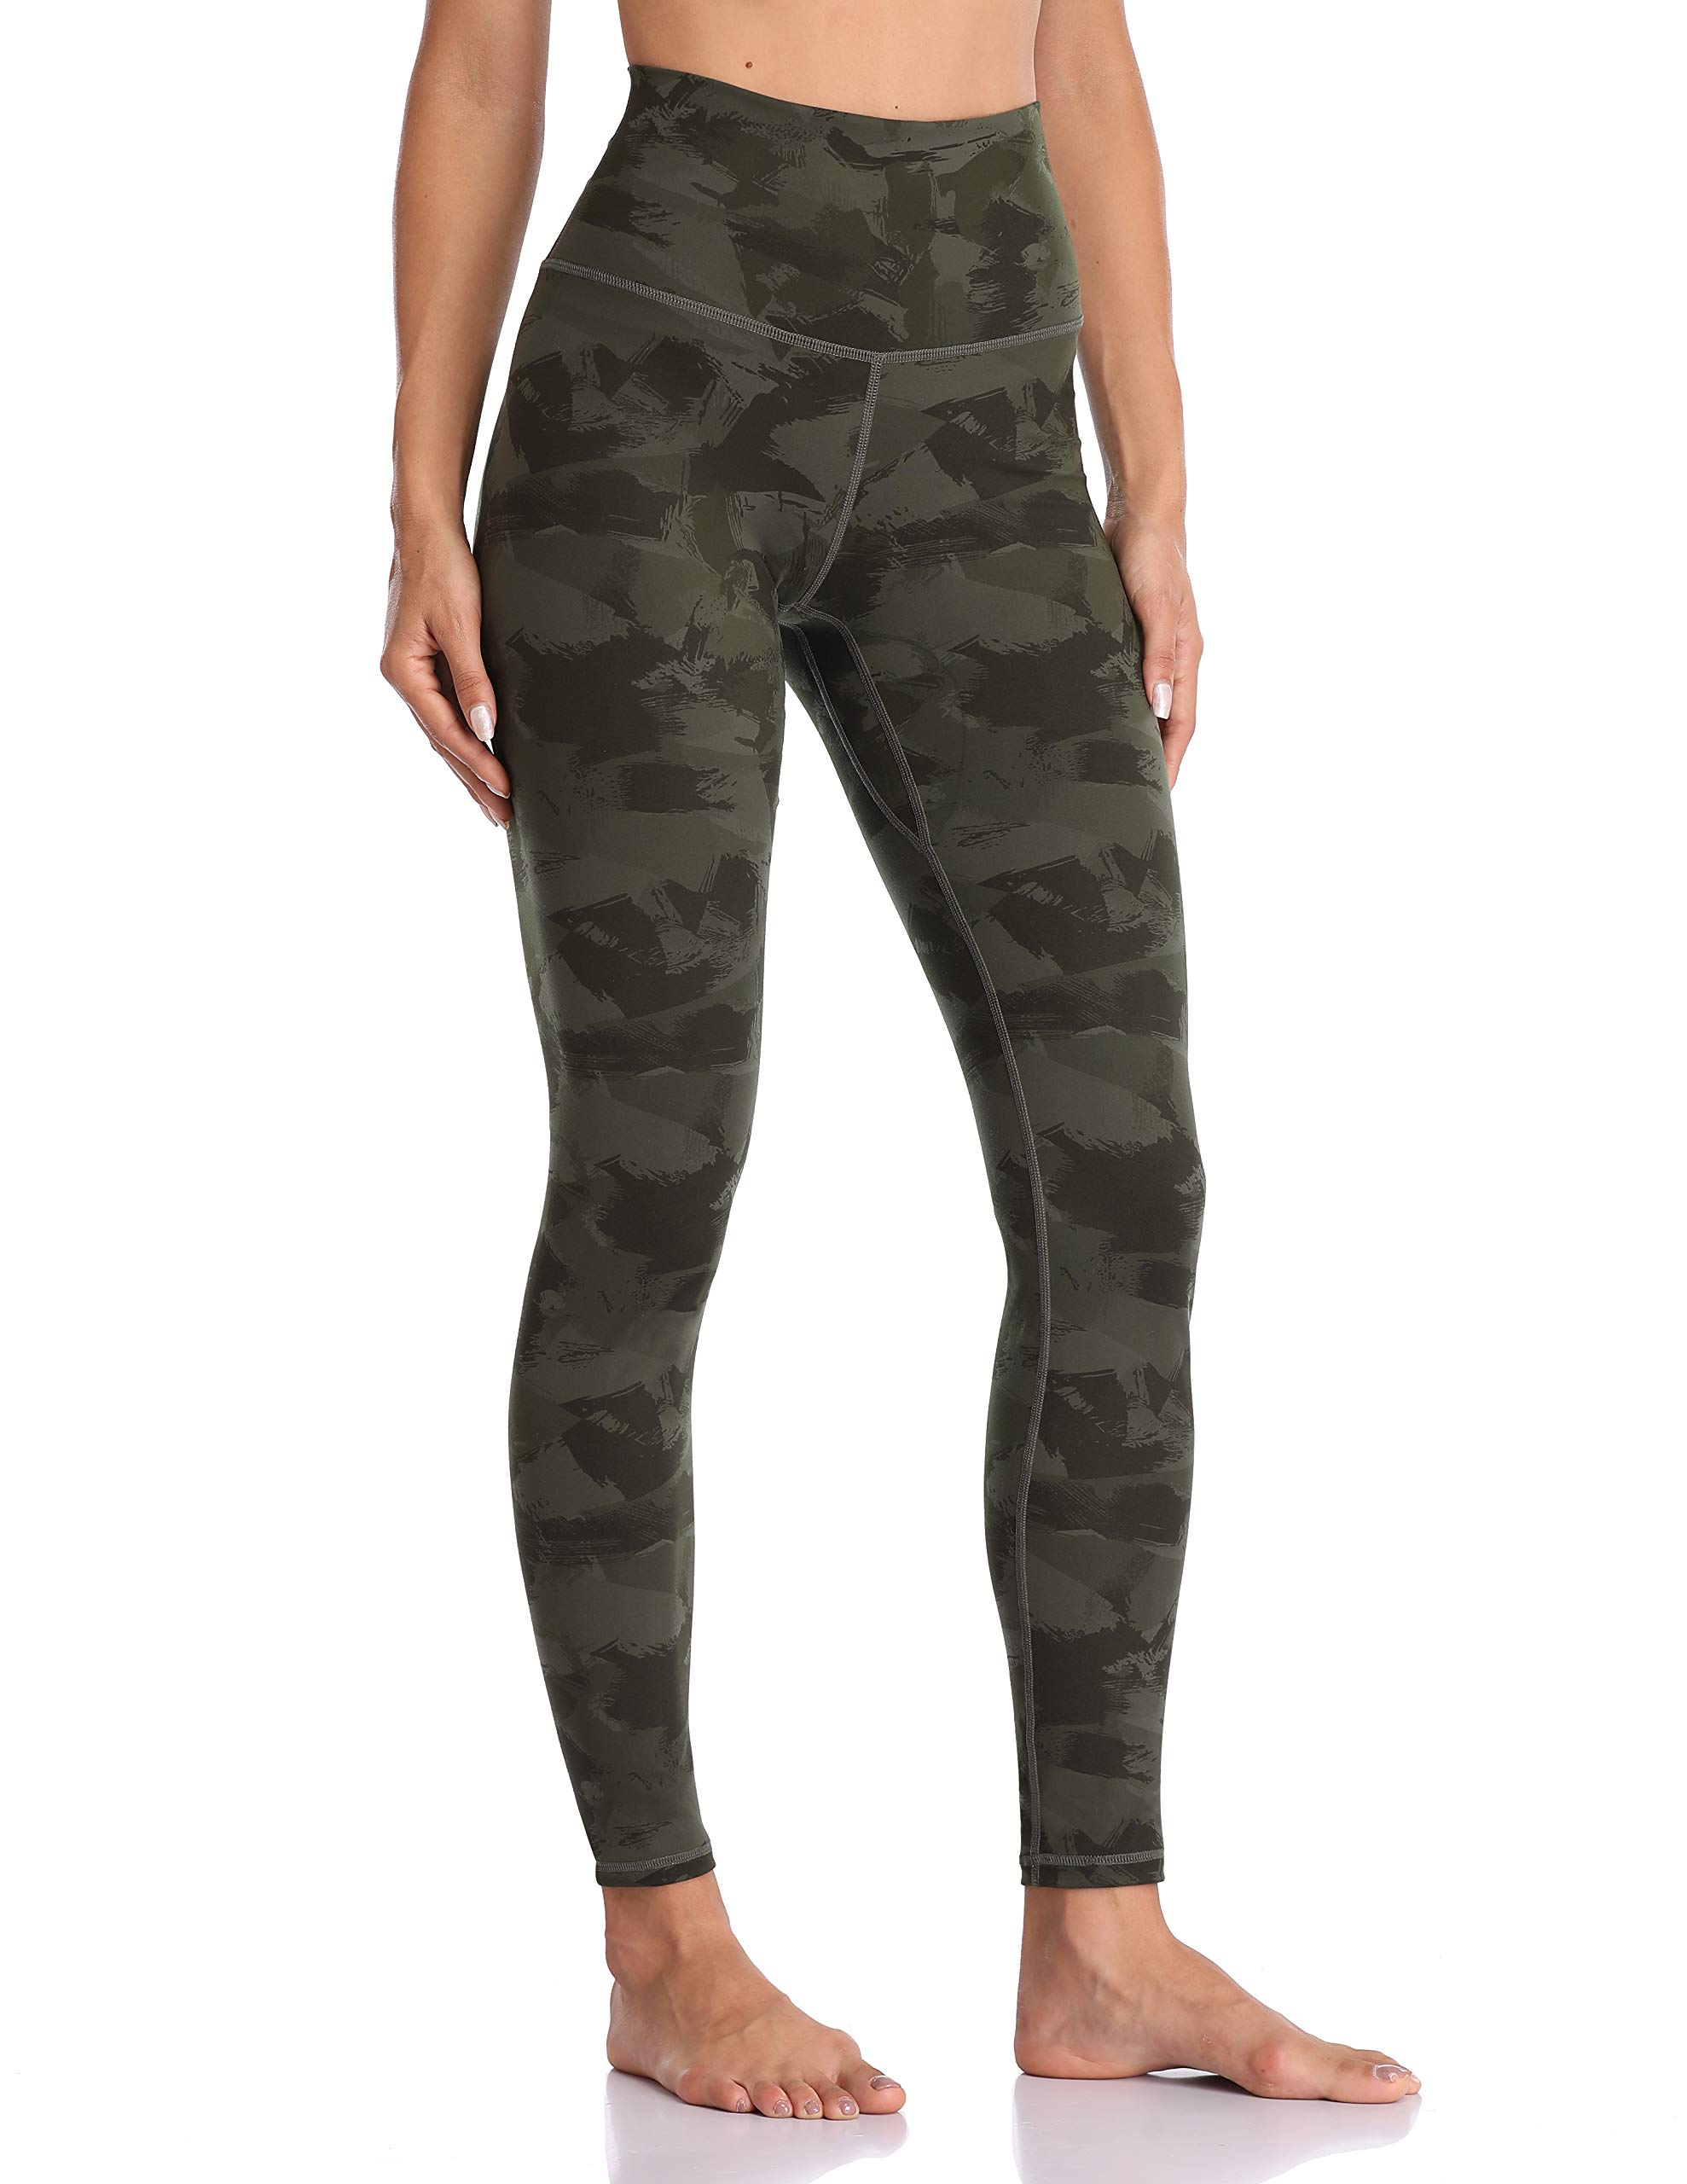 Colorfulkoala Women's High Waisted Pattern Leggings Full-Length Yoga Pants (XL, Army Green Splinter Camo) by Colorfulkoala